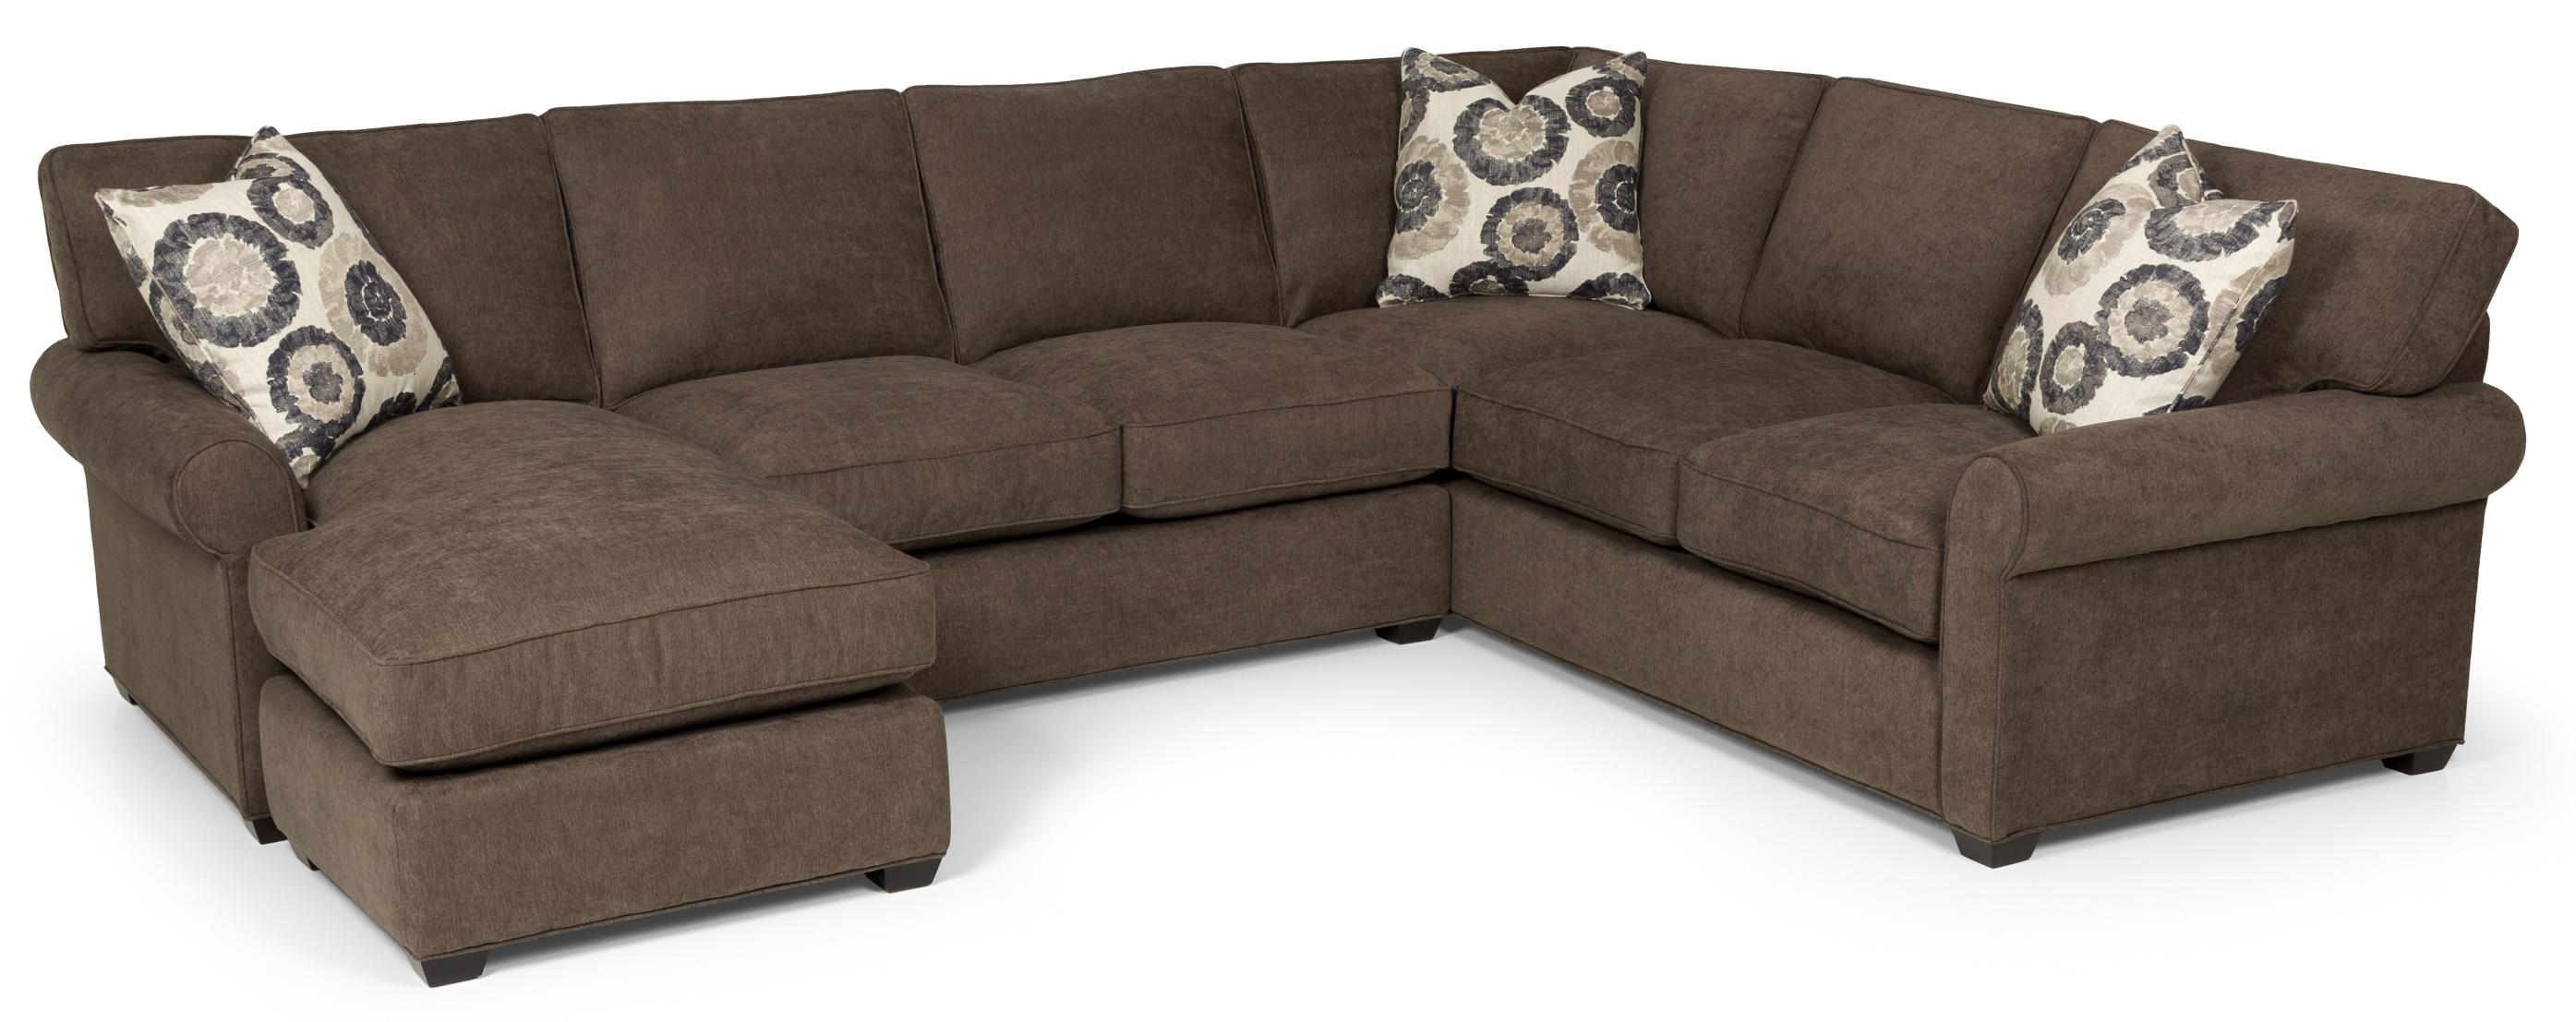 225 Transitional 2 Piece Sectional Sofa by Stanton at Wilson's Furniture